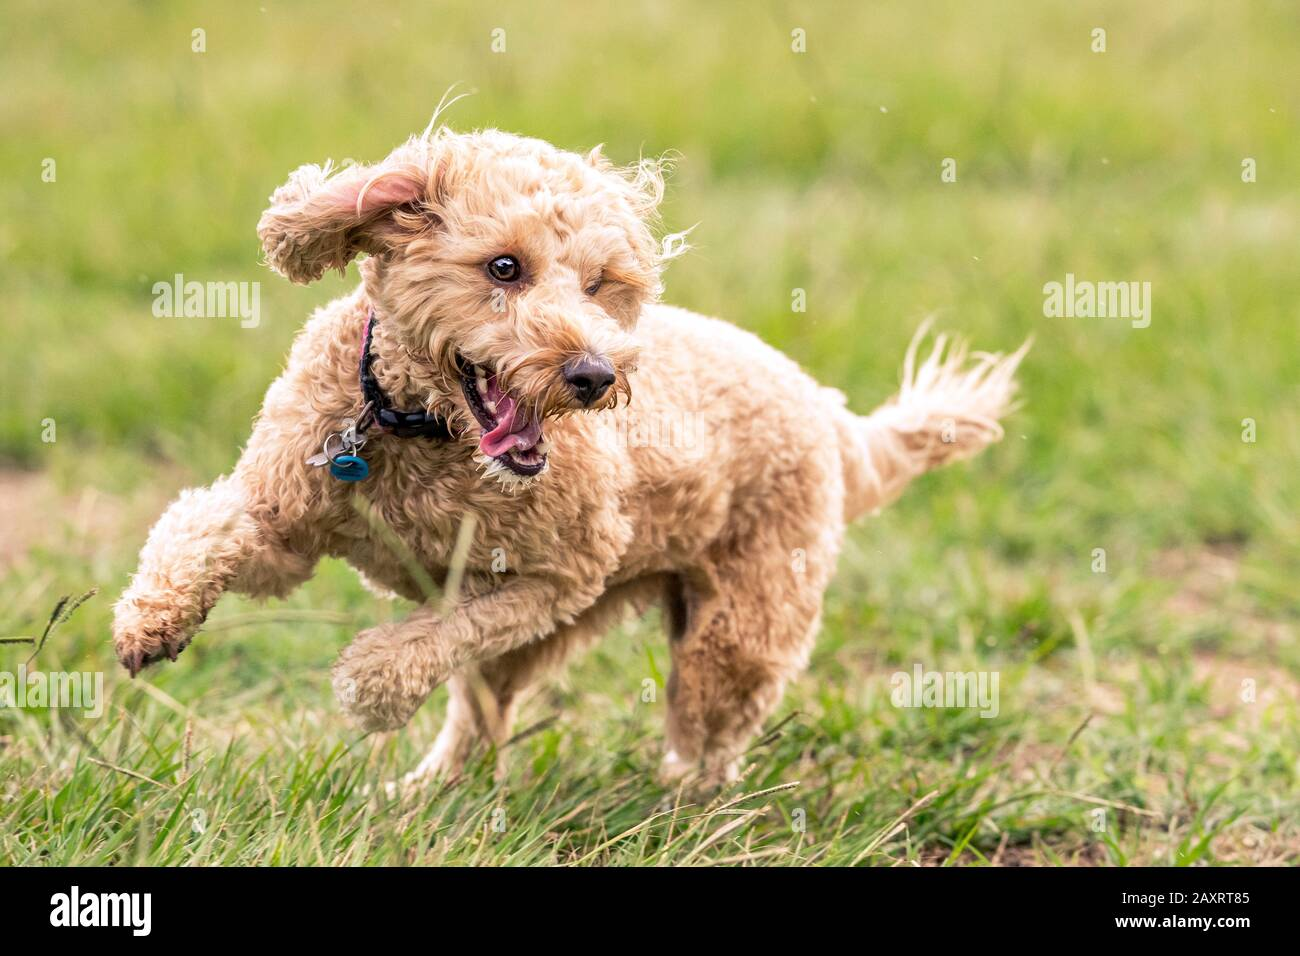 A Spoodle dog chases a ball in an Australian park Stock Photo